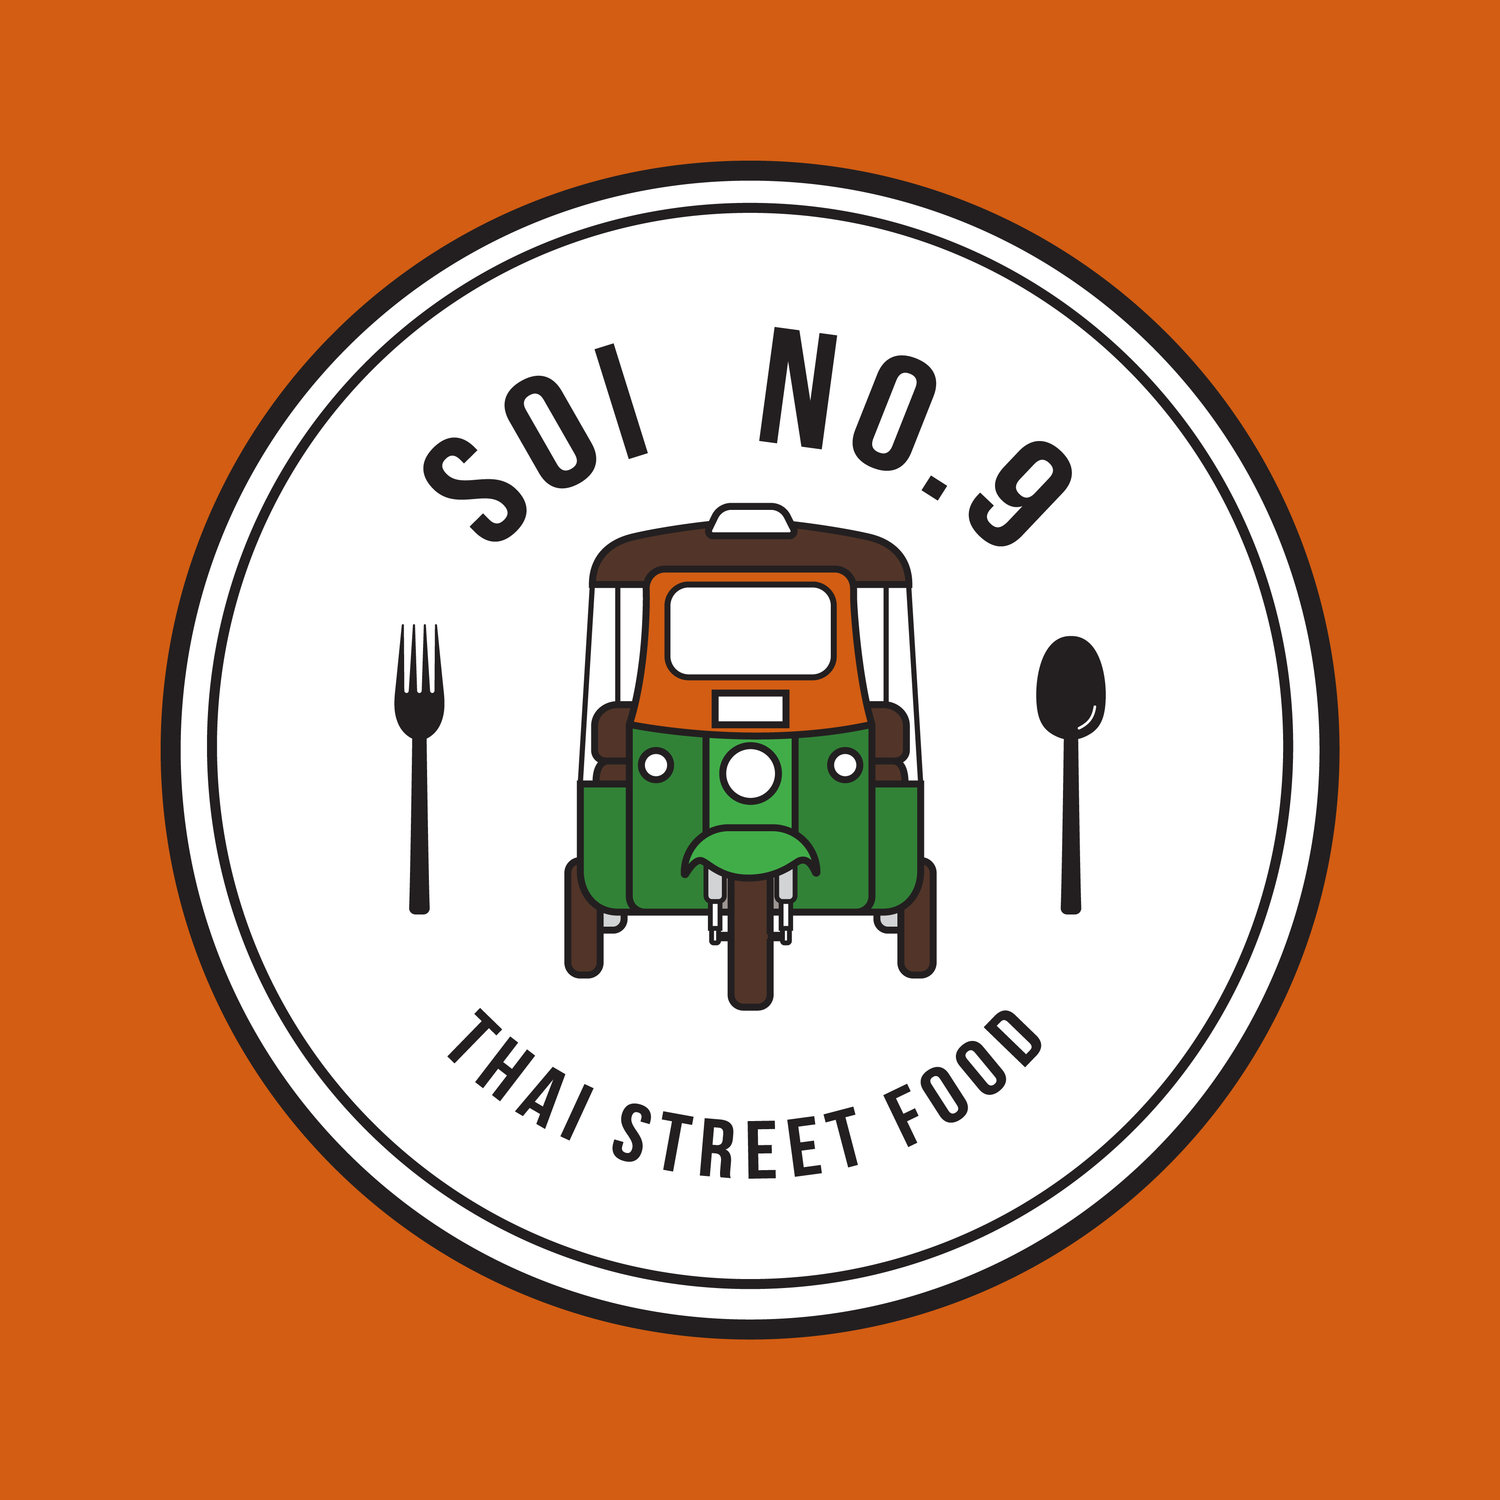 Soi Number 9